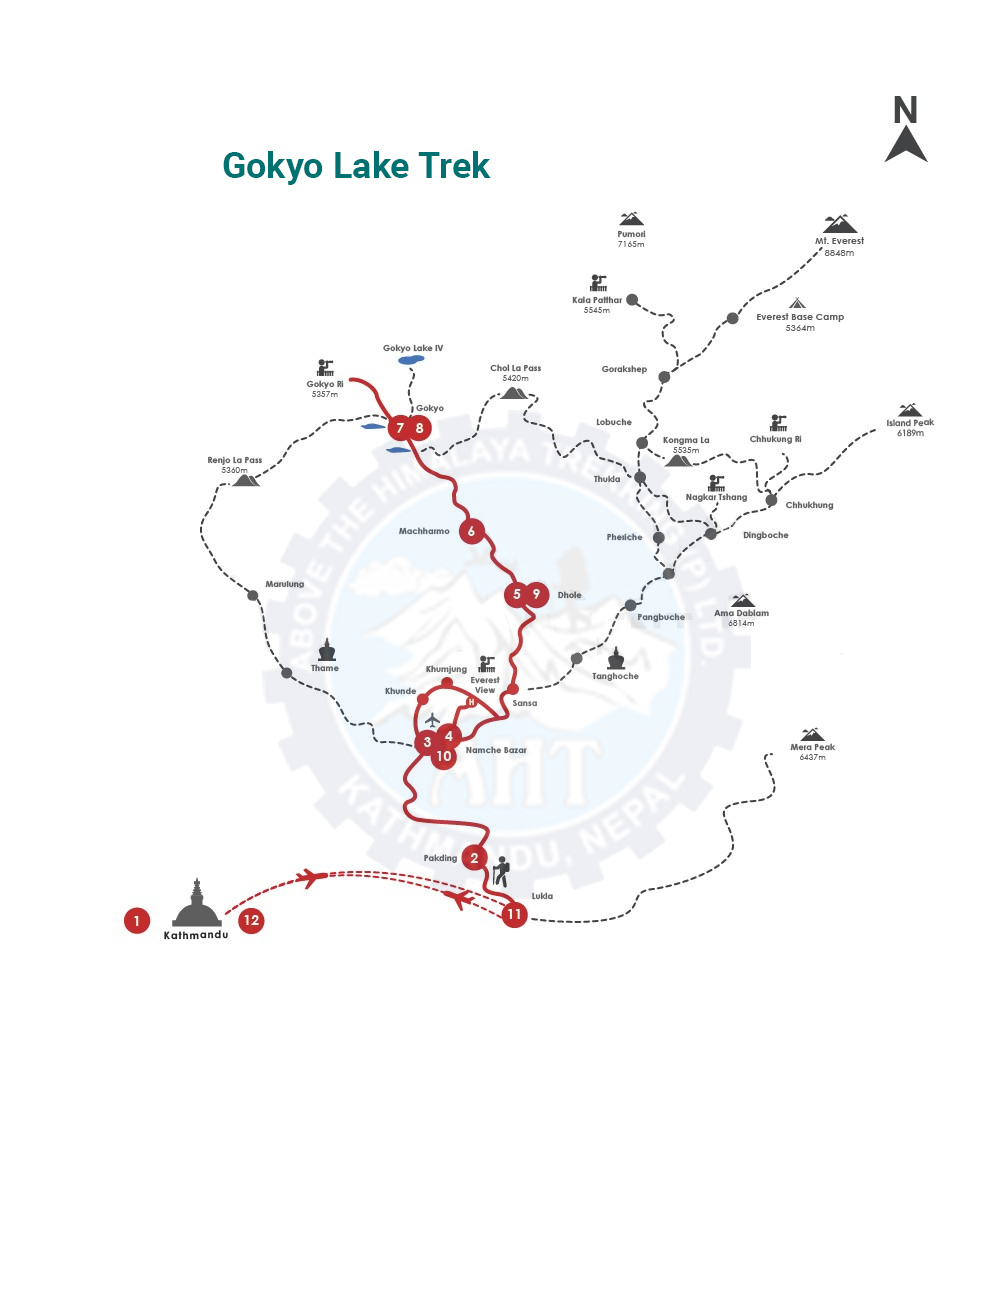 Gokyo Lake Trek Map